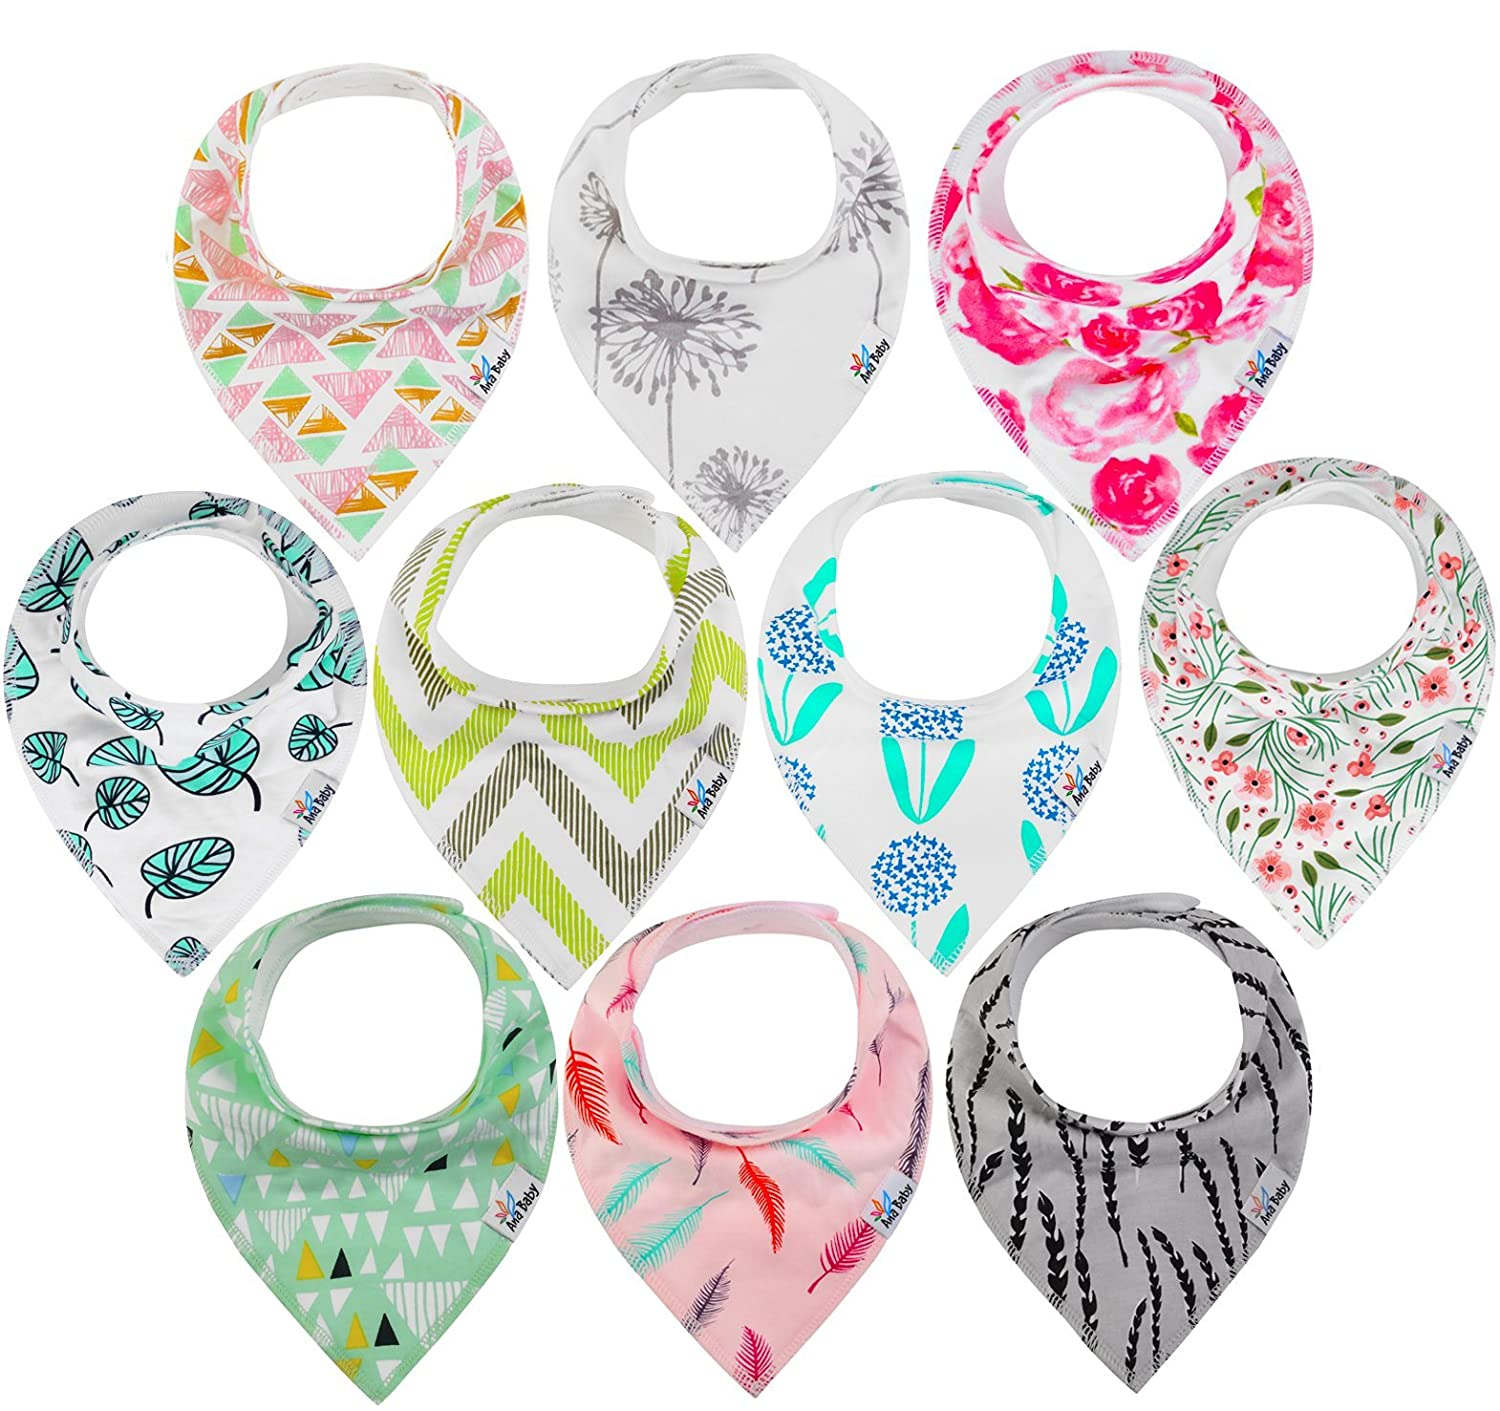 10-Pack Baby Bandana Drool Bibs for Drooling and Teething, 100% Organic Cotton, Soft and Absorbent, Hypoallergenic Bibs for Baby Girls - Baby Shower Gift Set by Ana Baby Ana Premiums